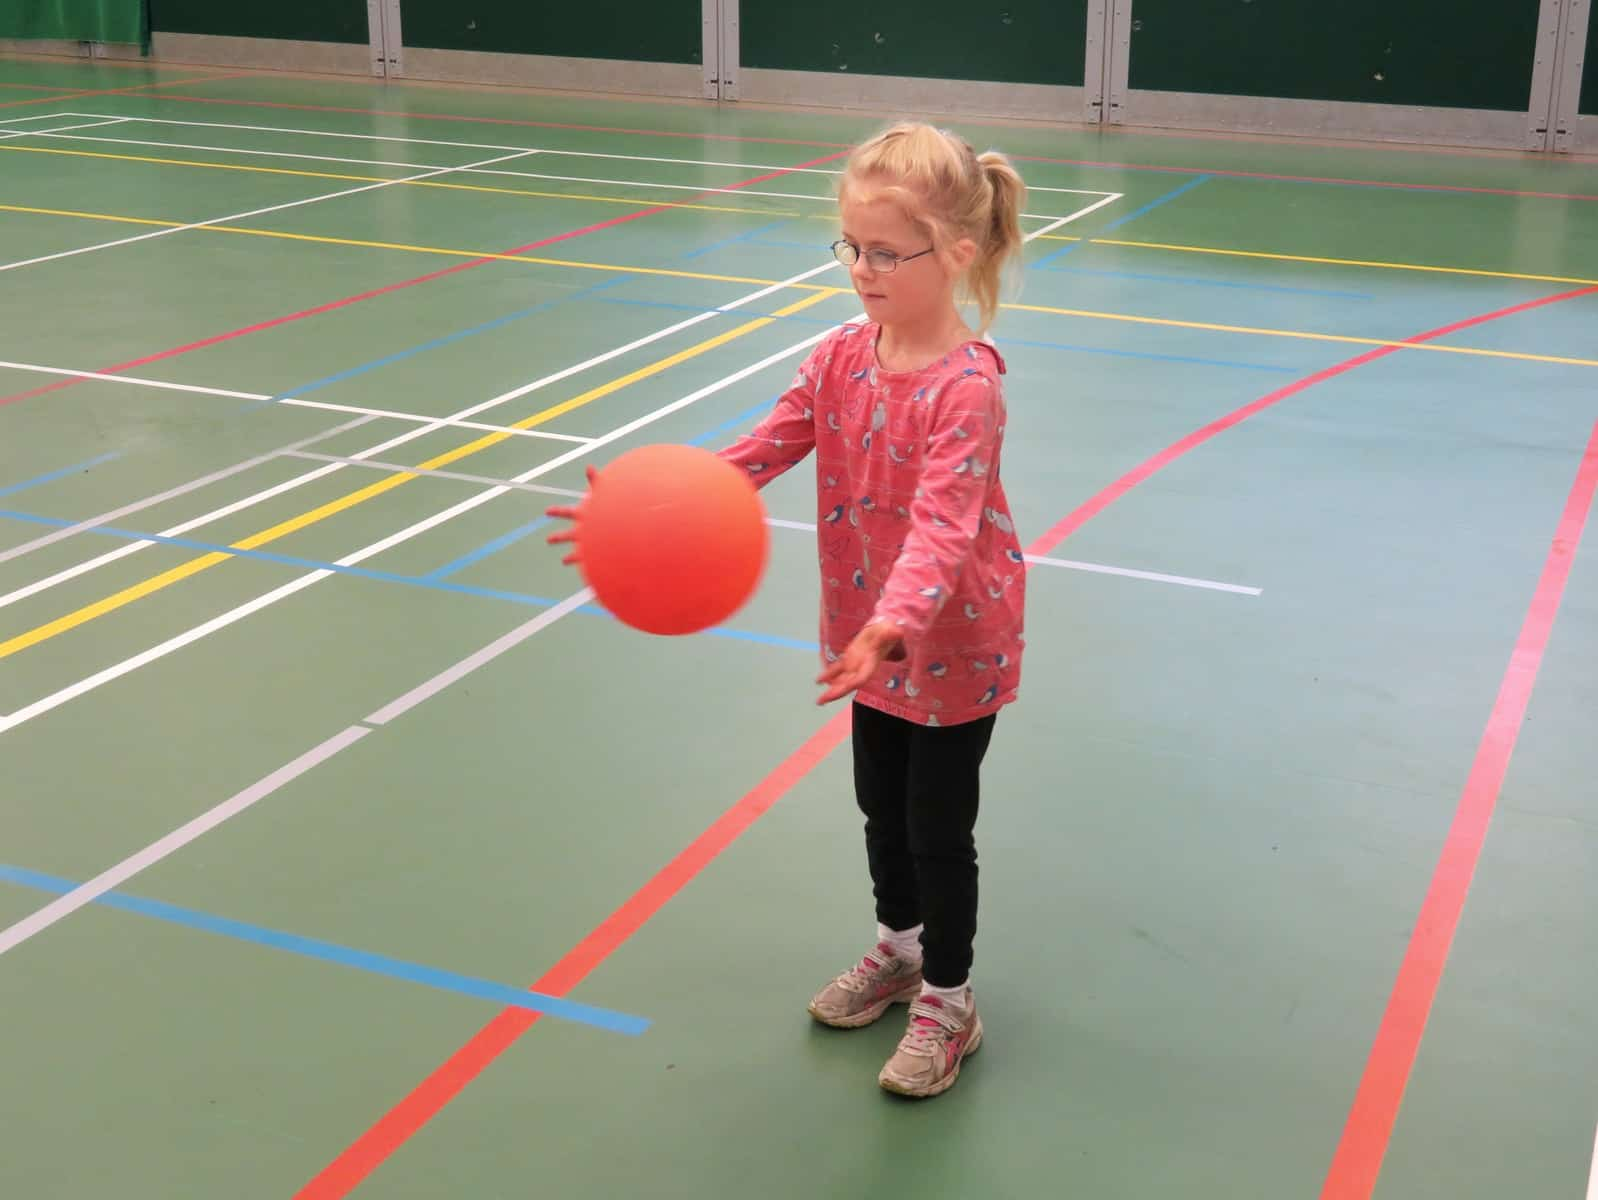 Super Camps Malvern College little girl playing ball